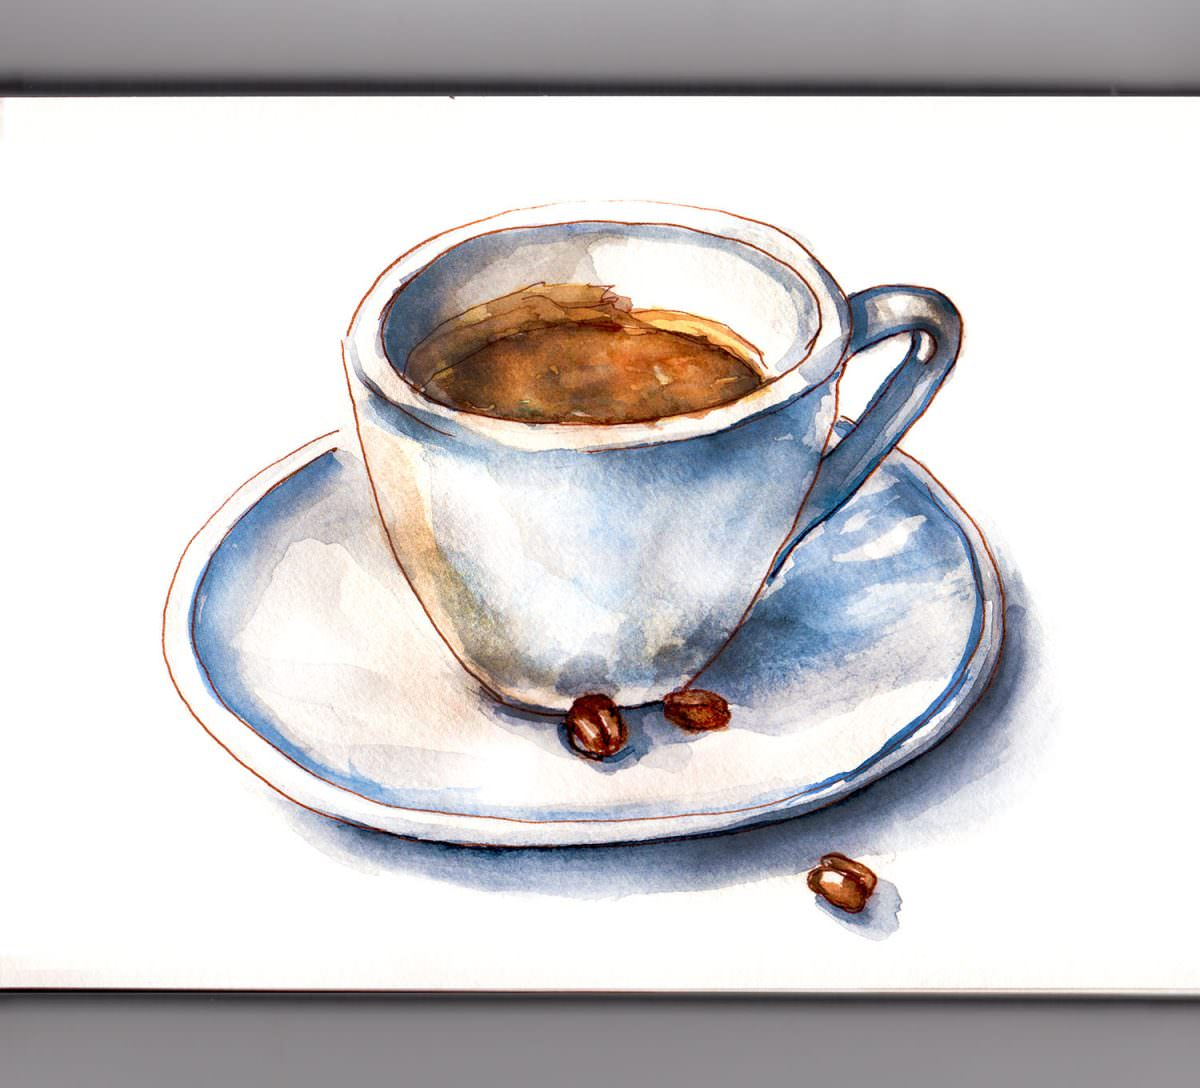 #WorldWatercolorGroup - Day 5 - Espresso On A Foggy Day - Doodlewash